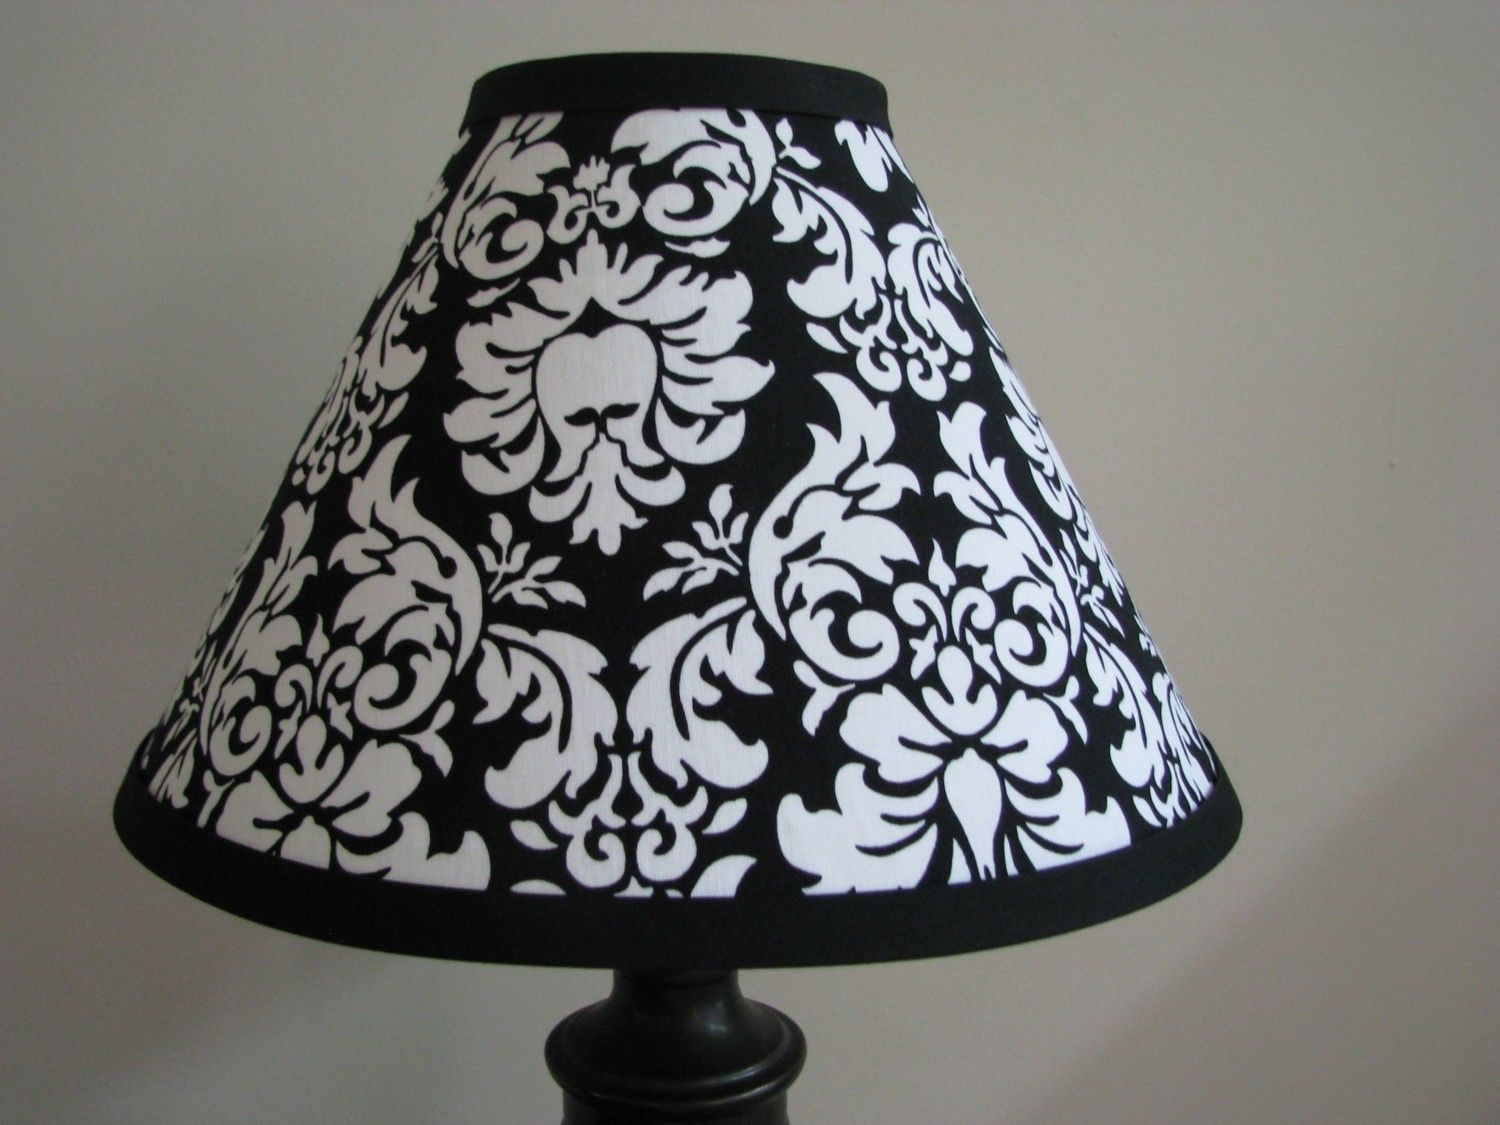 Black and white damask lamp shade bedroom nursery 2600 via etsy black and white damask lamp shade bedroom nursery 2600 via etsy aloadofball Image collections